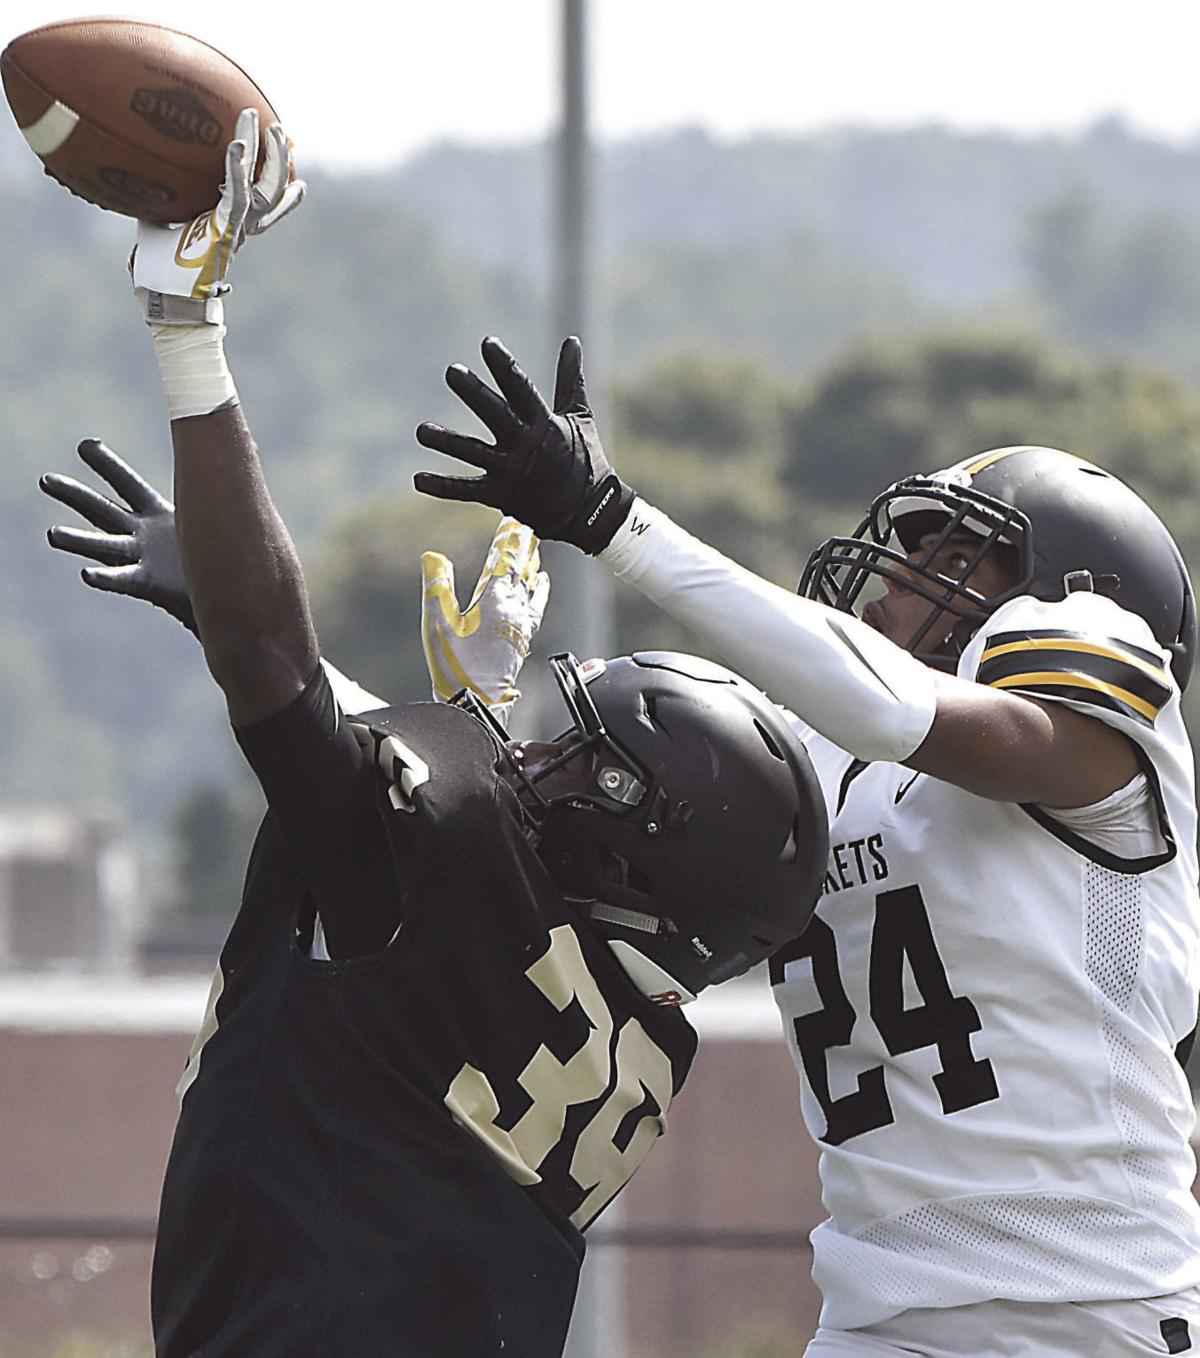 Randolph-Macon claims first win over Ferrum, 31-10